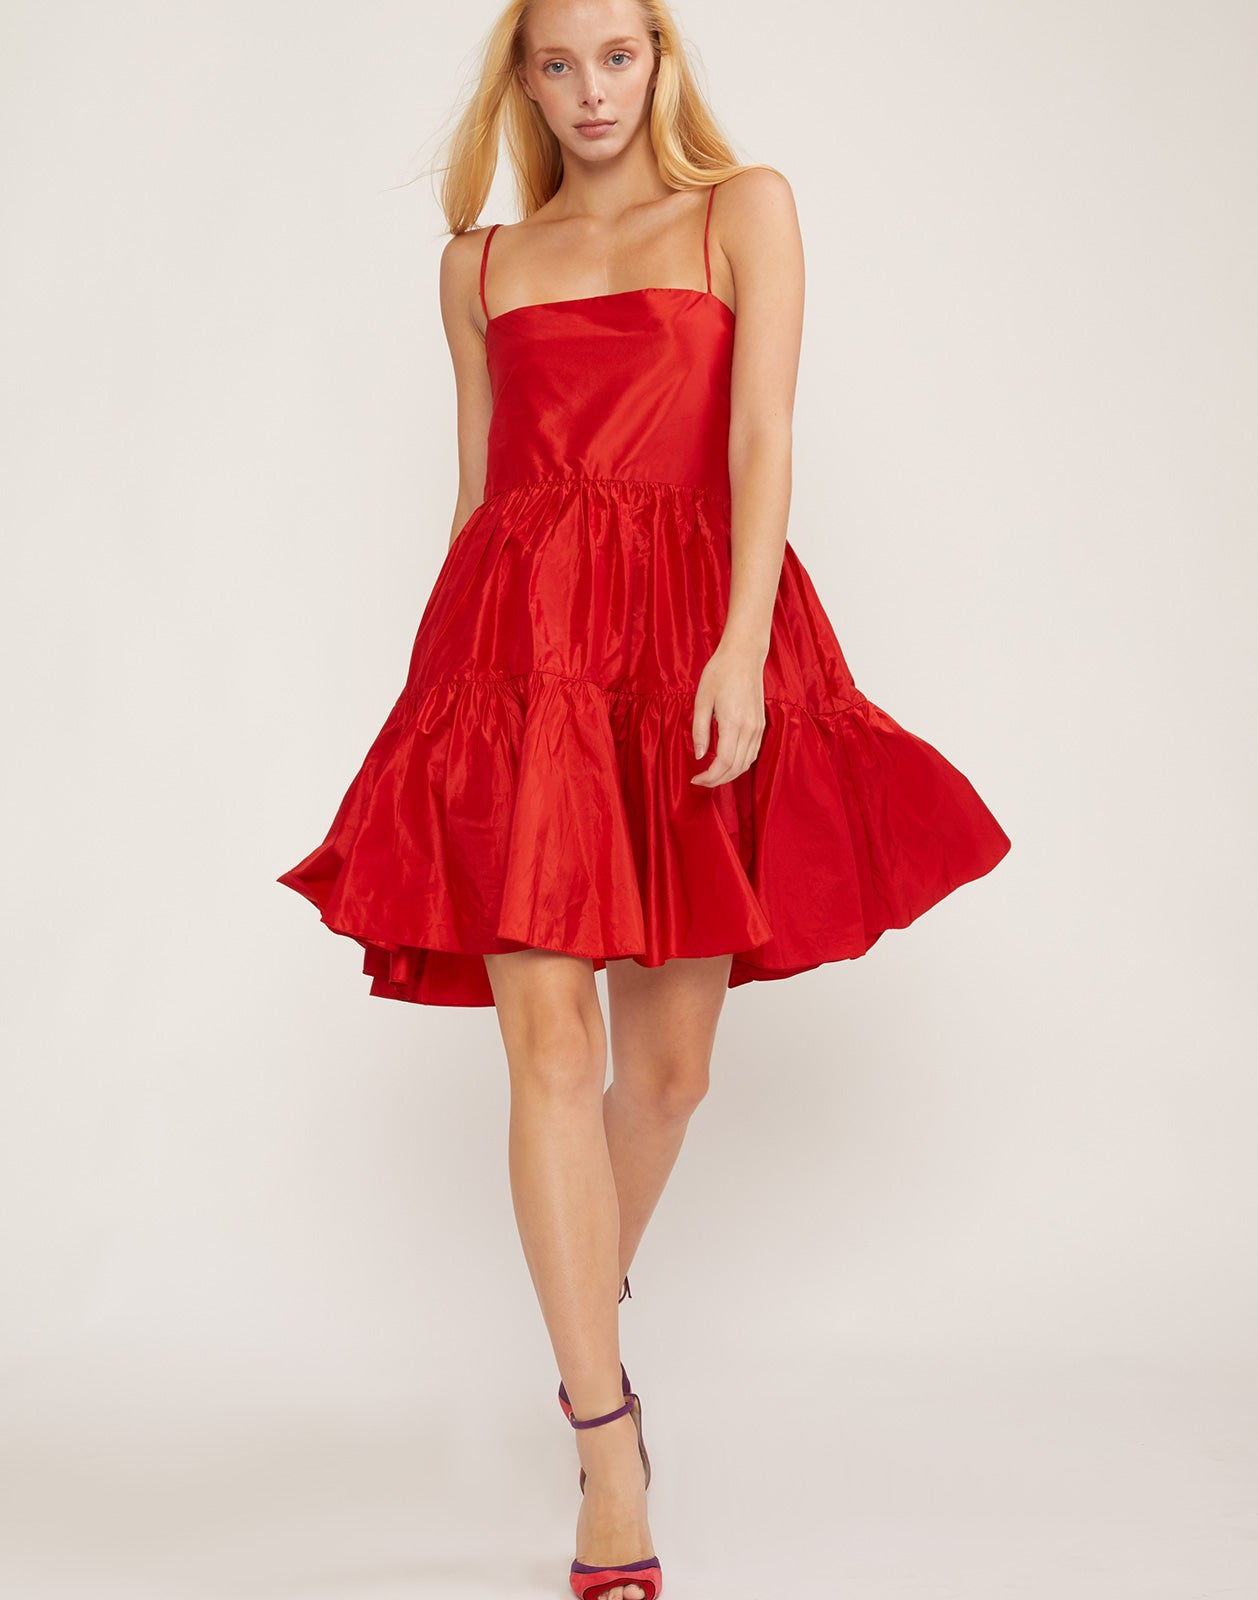 Full front view of the cherry red silk taffeta party dress.